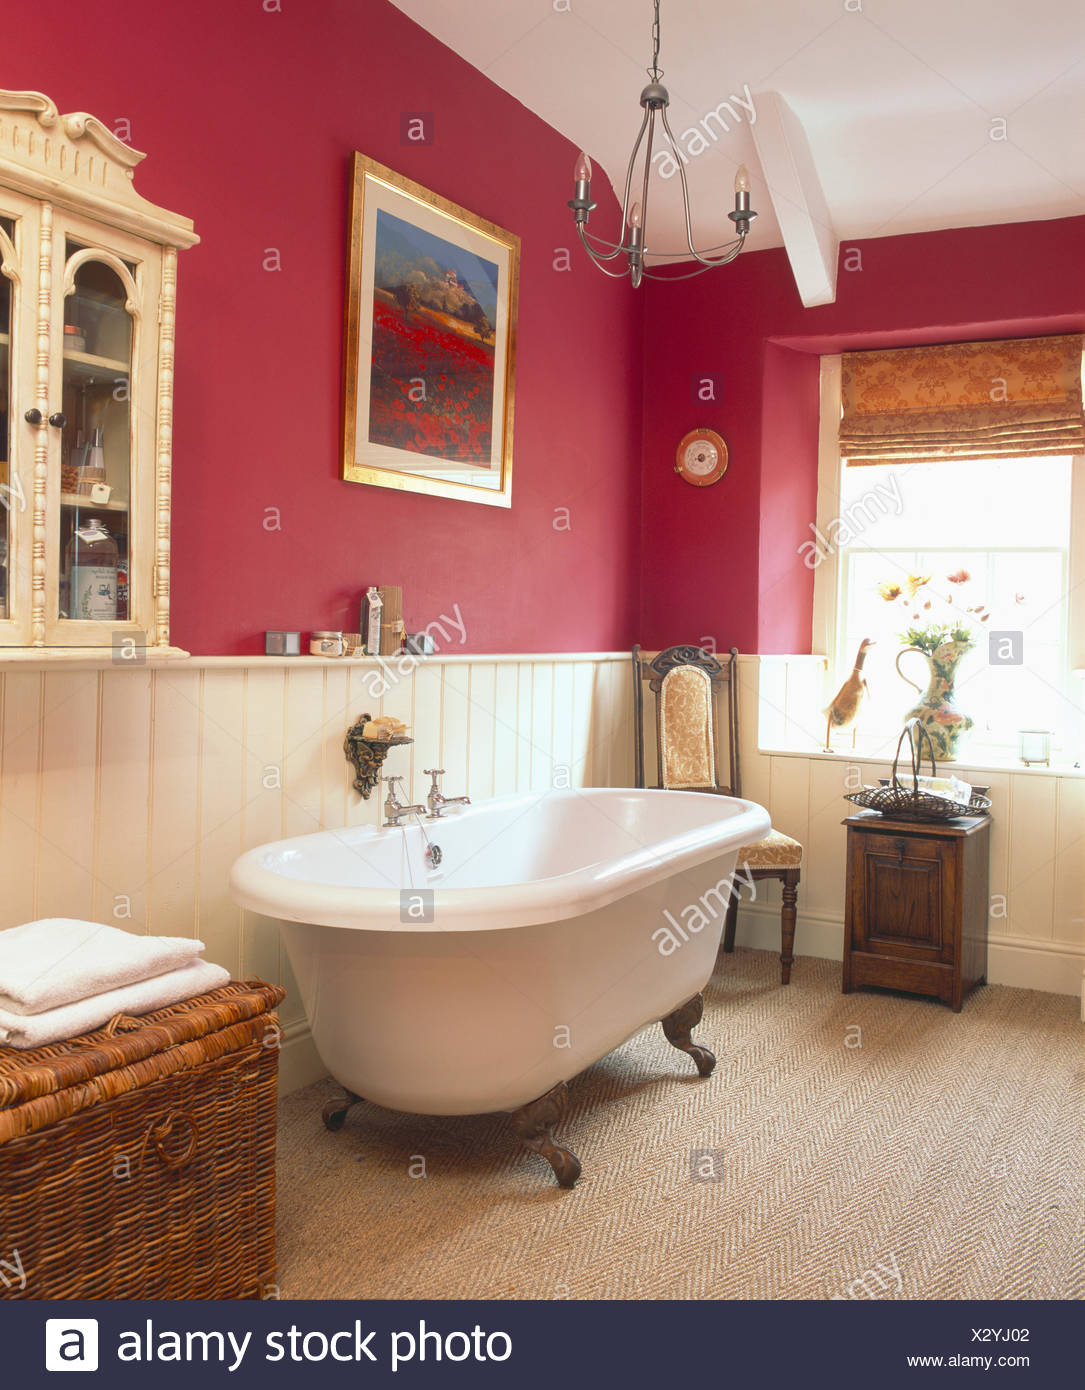 Rolltop Bath In Dark Pink Bathroom With Cream Tongue+groove Panelling And  Coir Carpet